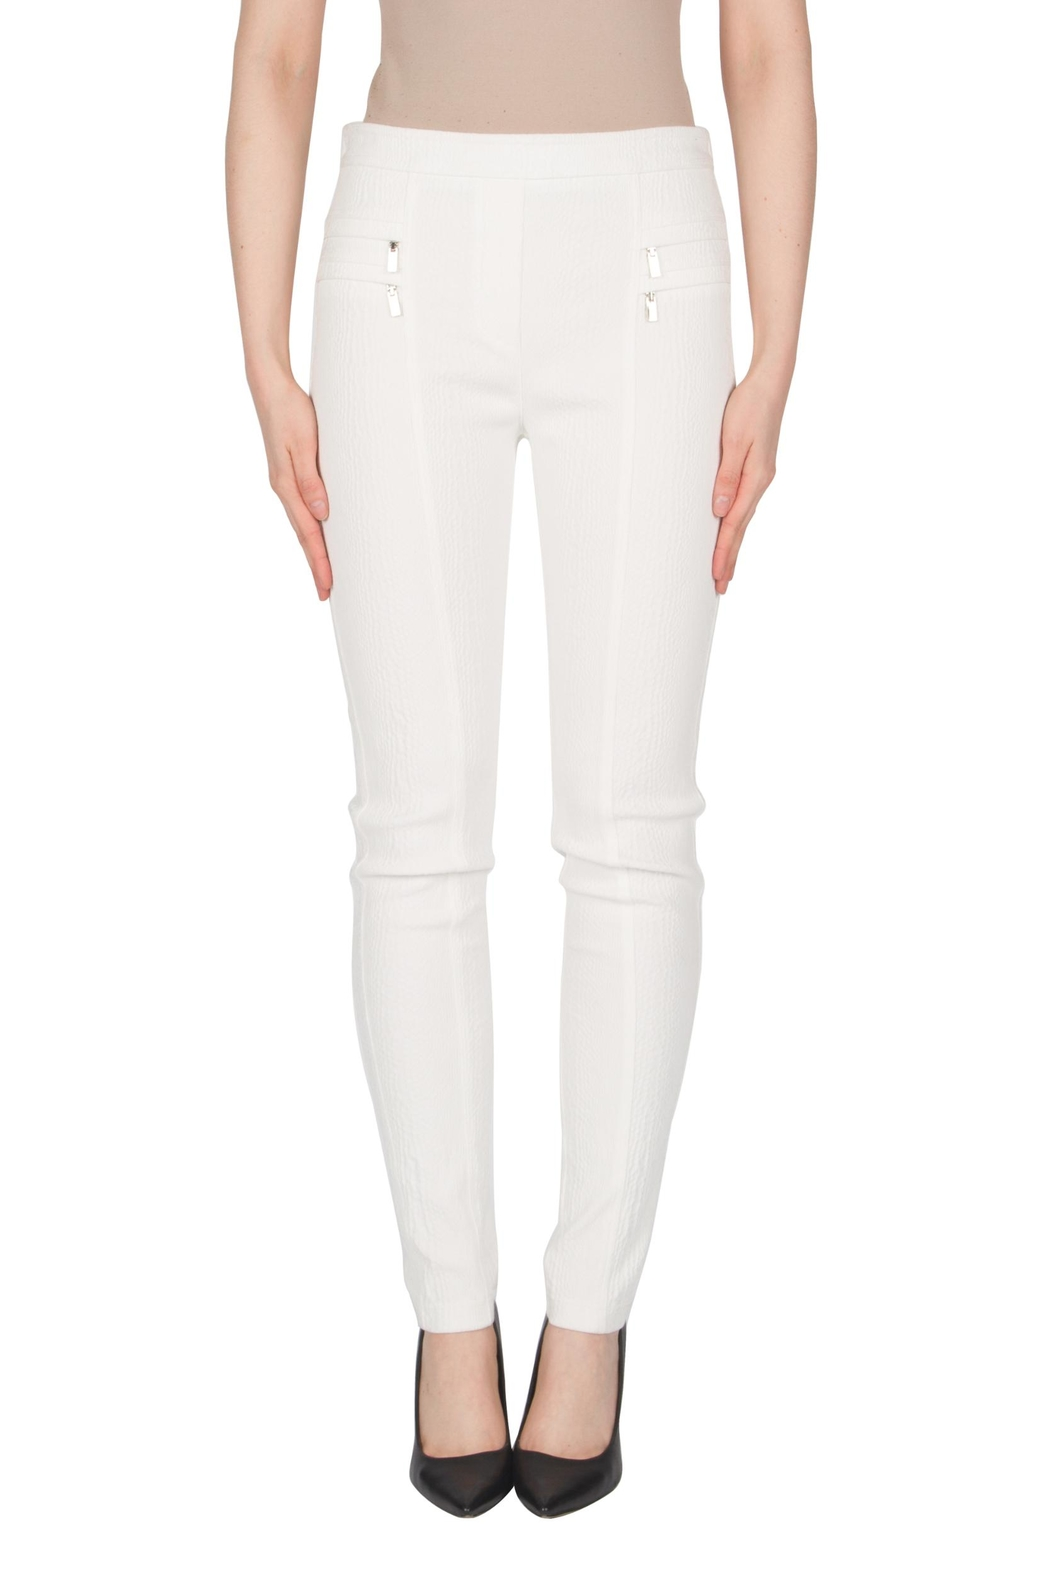 Joseph Ribkoff Winter White Pants - Front Cropped Image